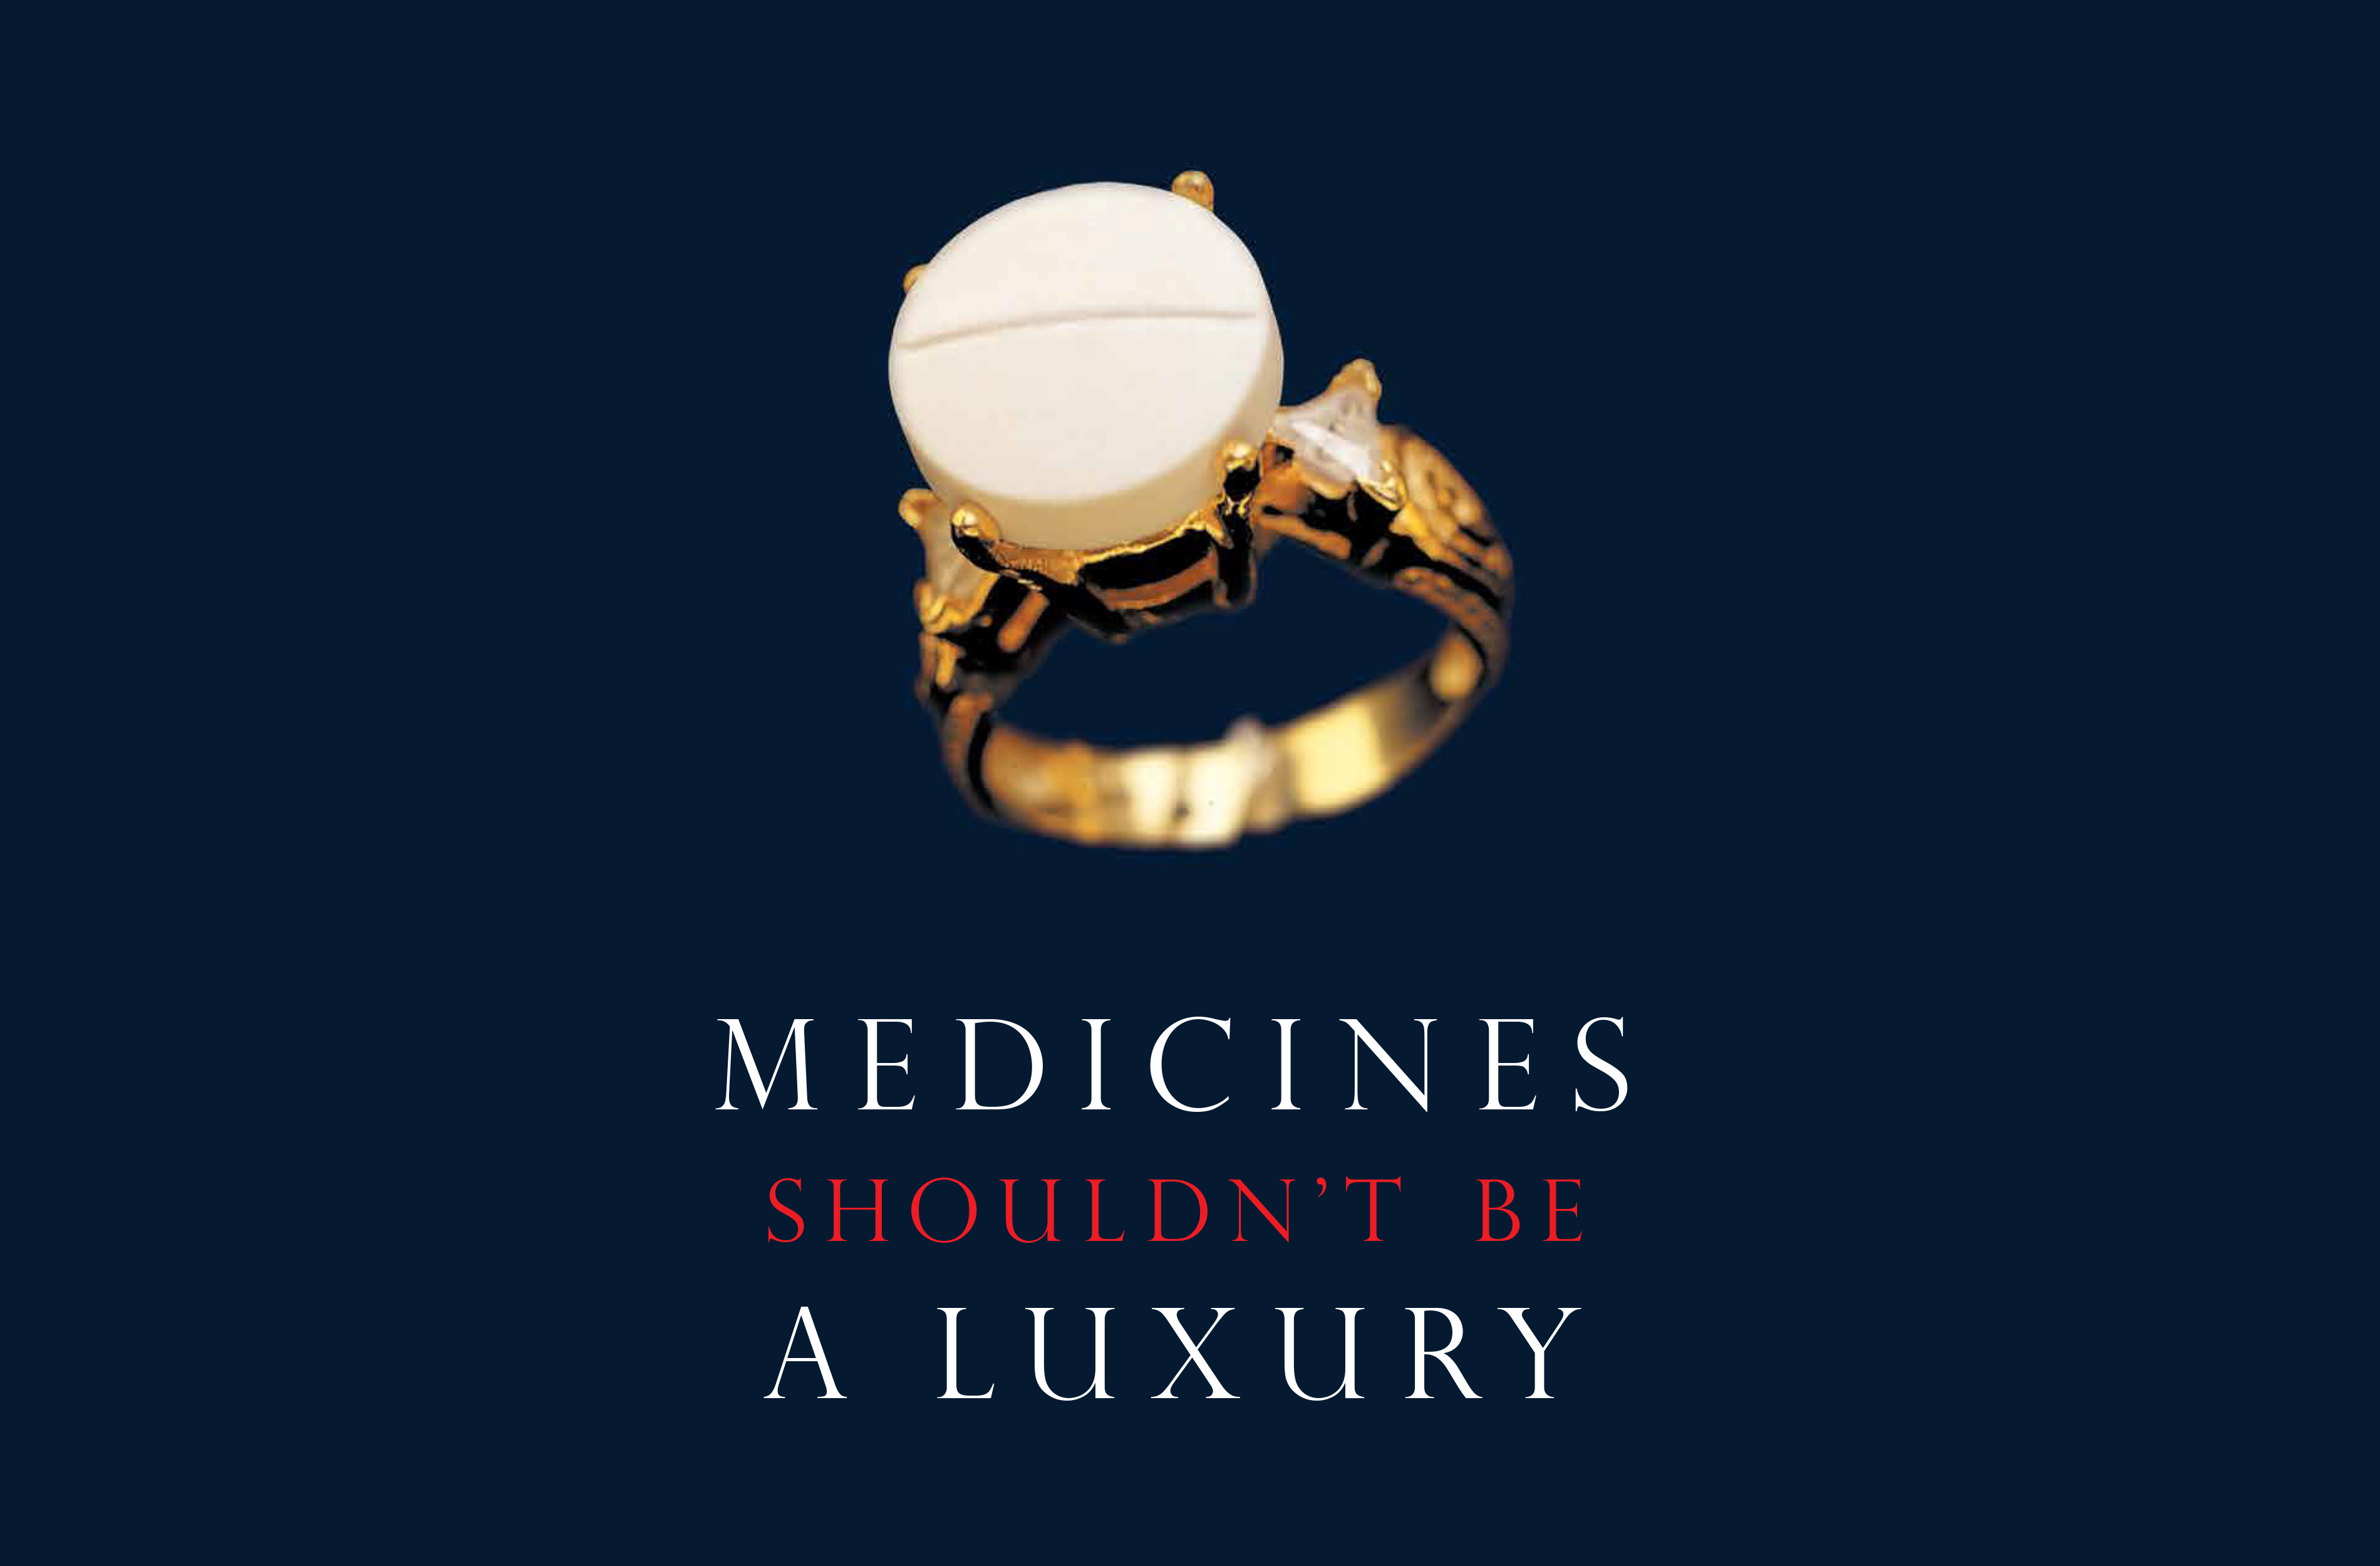 Medicines Shouldn't Be A Luxury